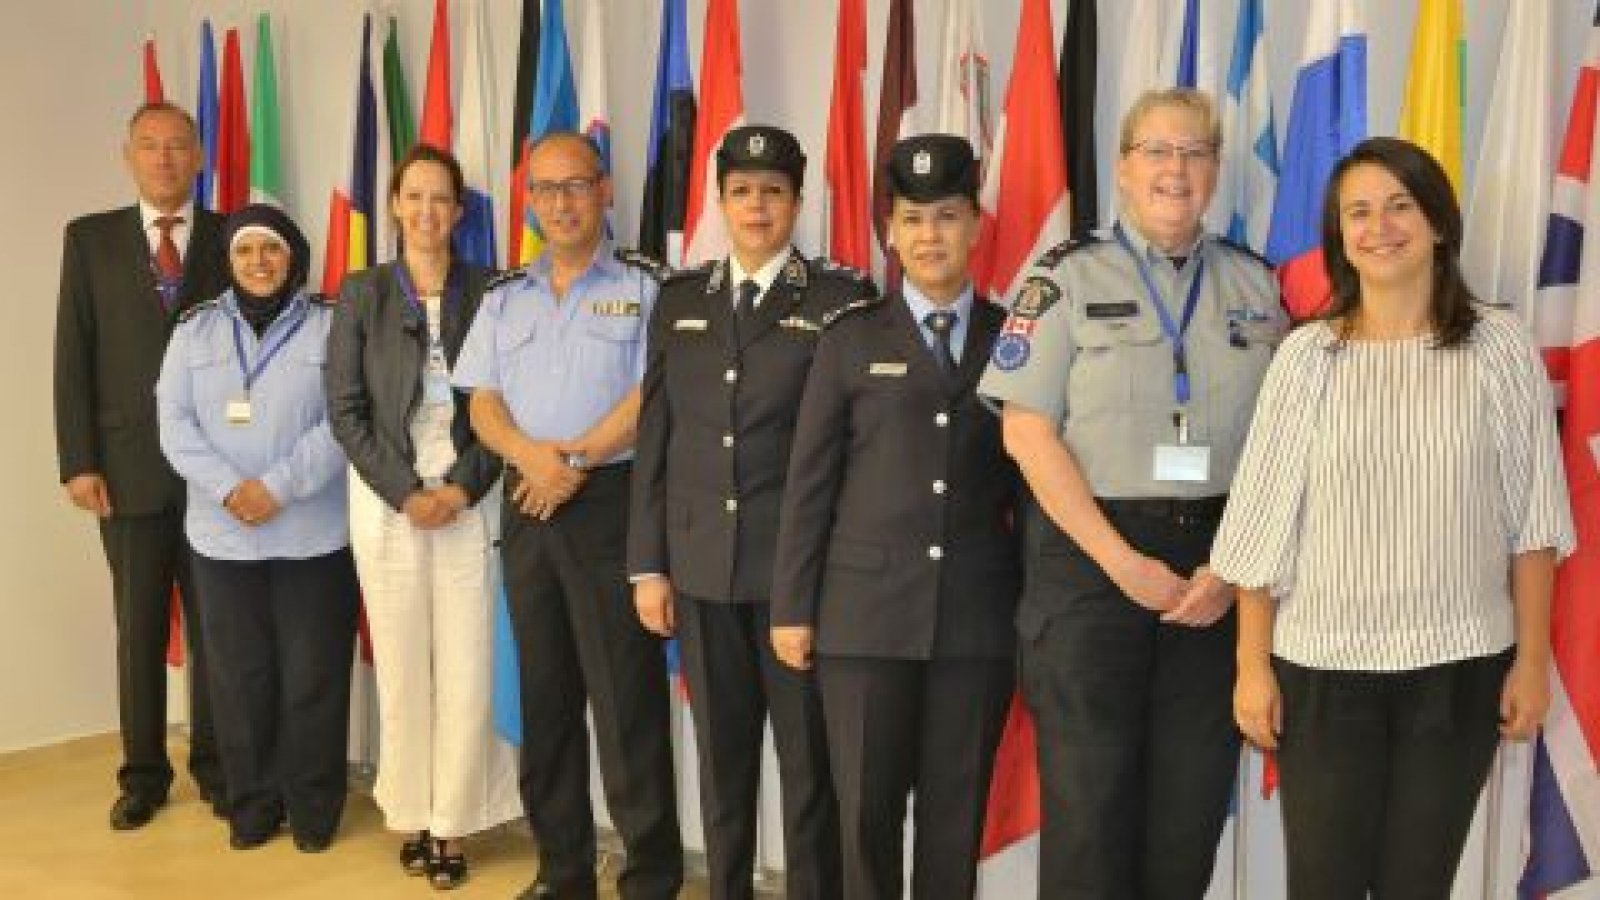 The group of senior women Police Officers and the Head of Mission representatives